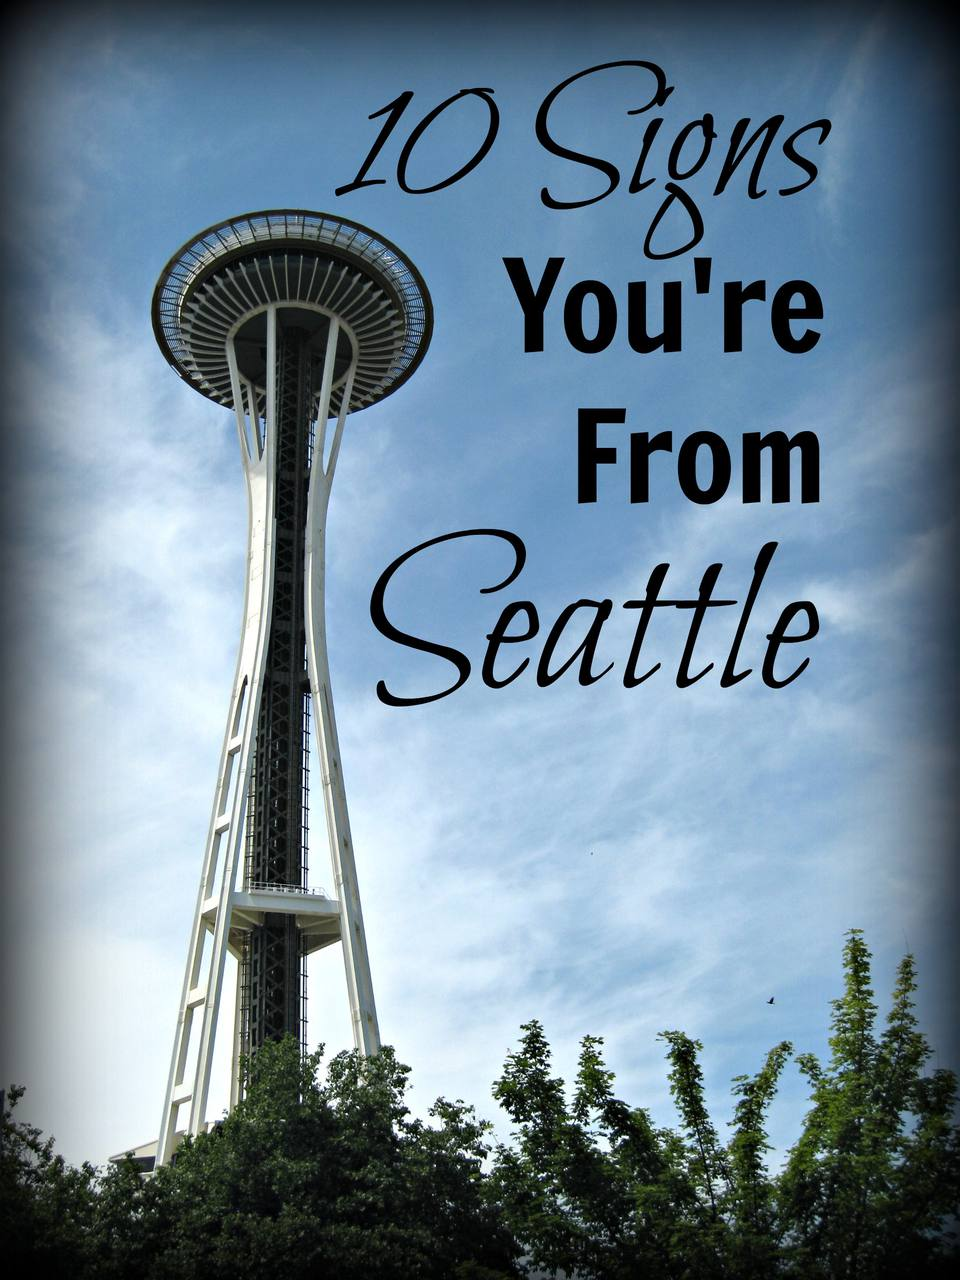 10 signs you're from Seattle